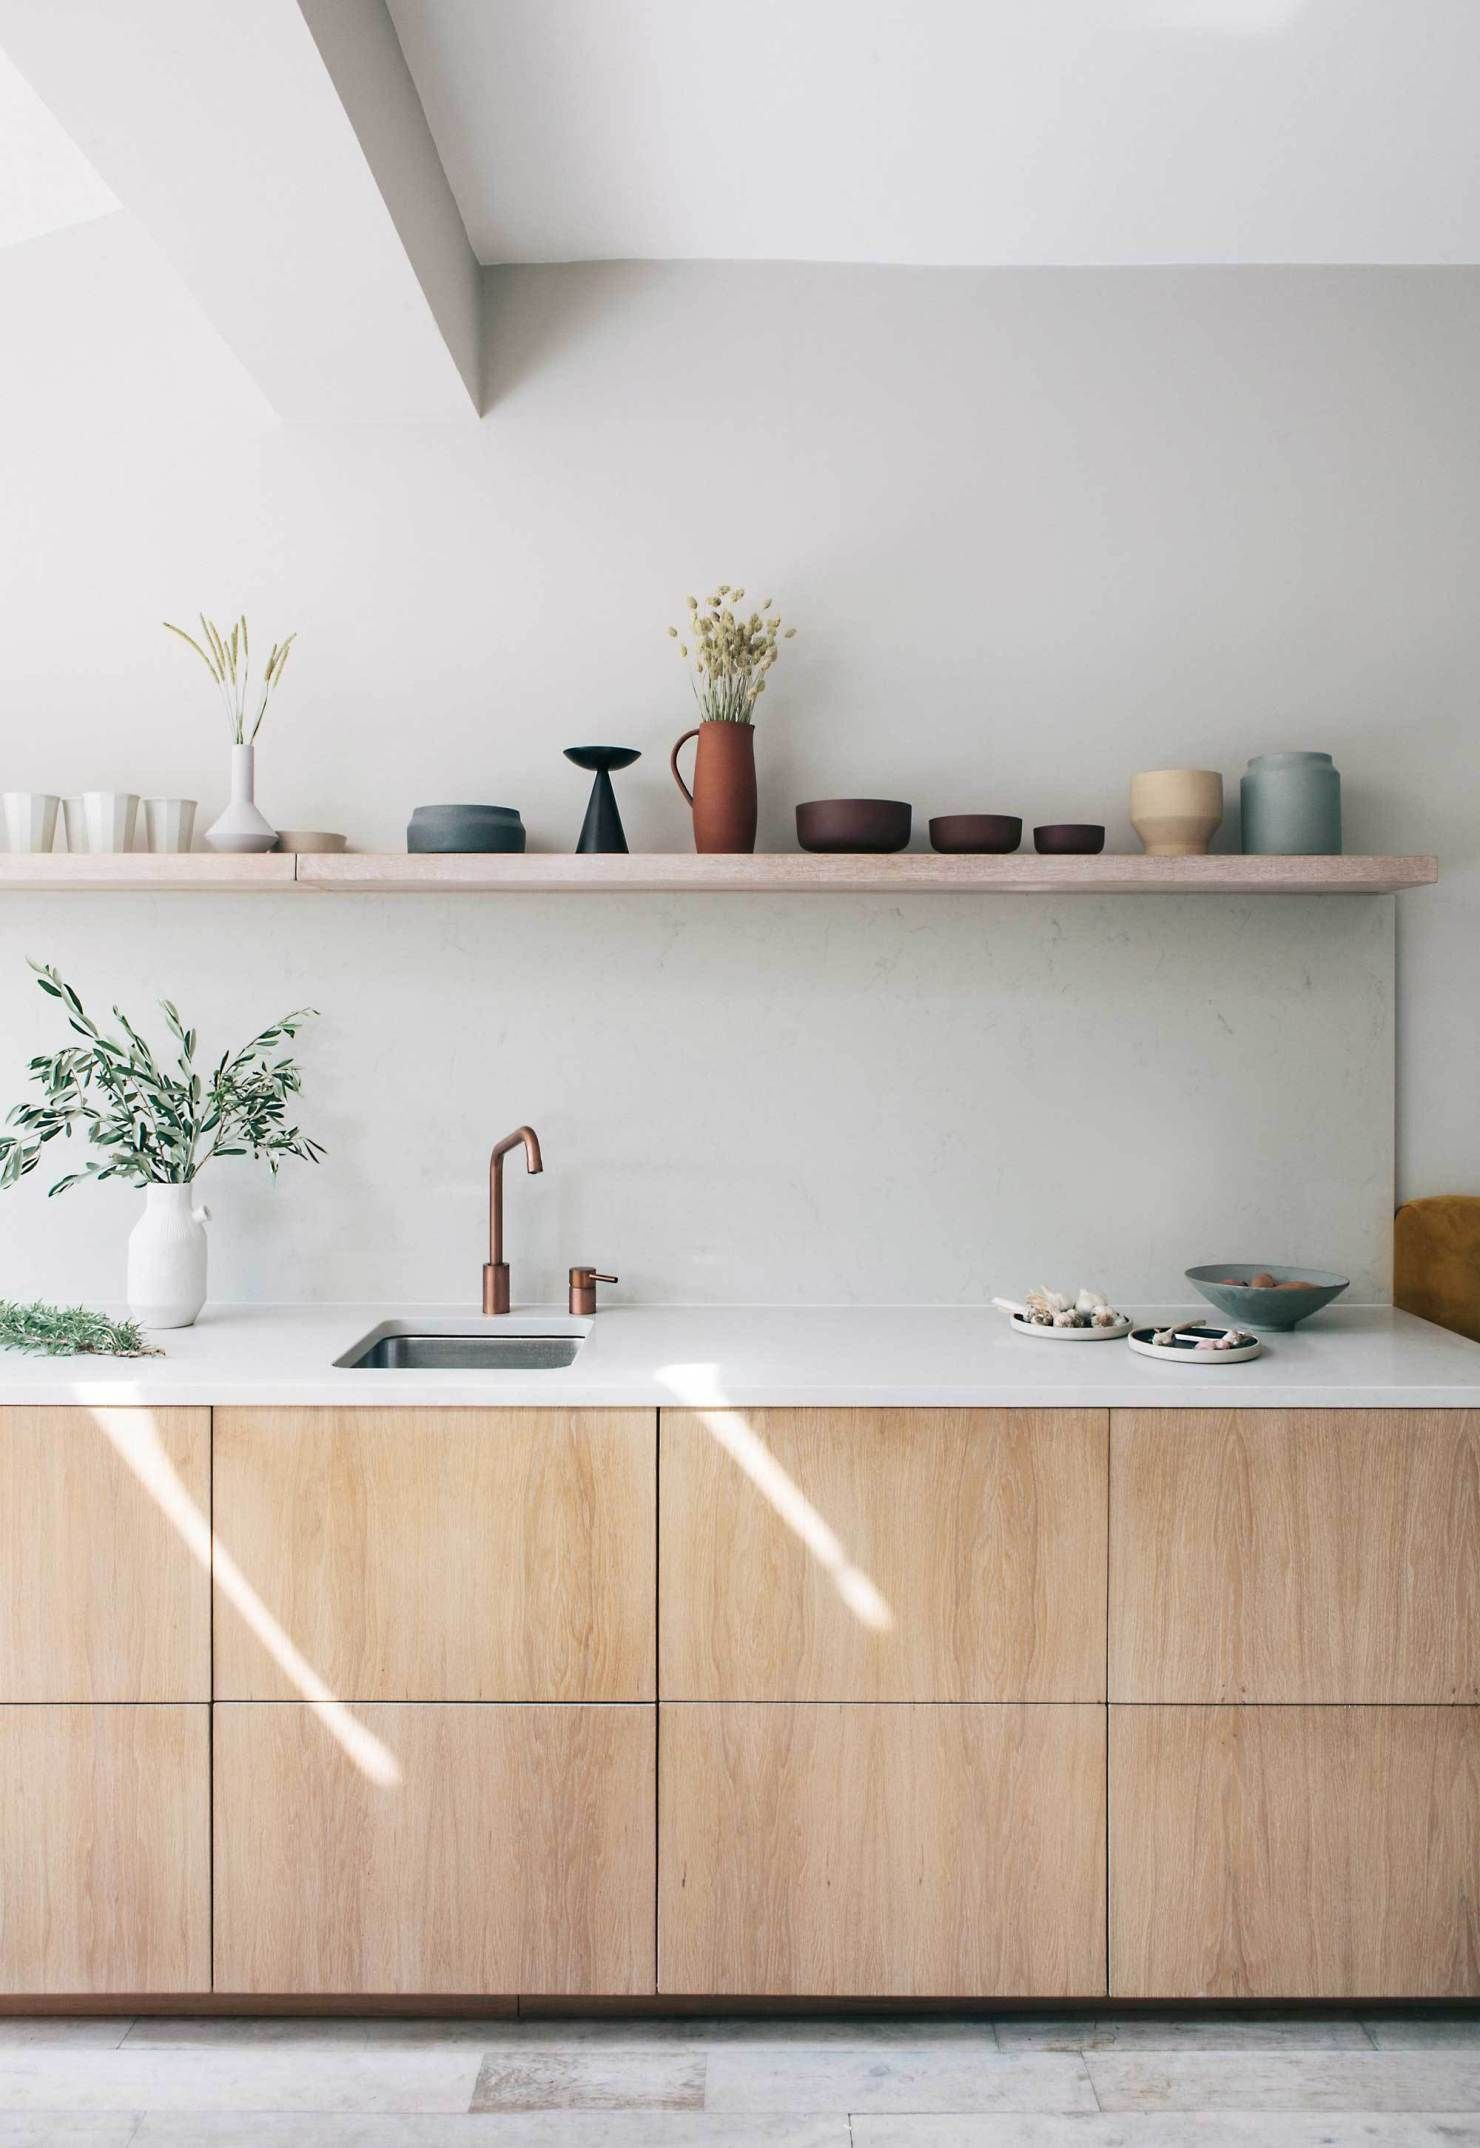 Six Brands To Help You Customise Ikea Kitchen Cabinets These Four Walls Nel 2020 Mobili Da Cucina Ikea Idee Cucina Ikea Stile Cucina